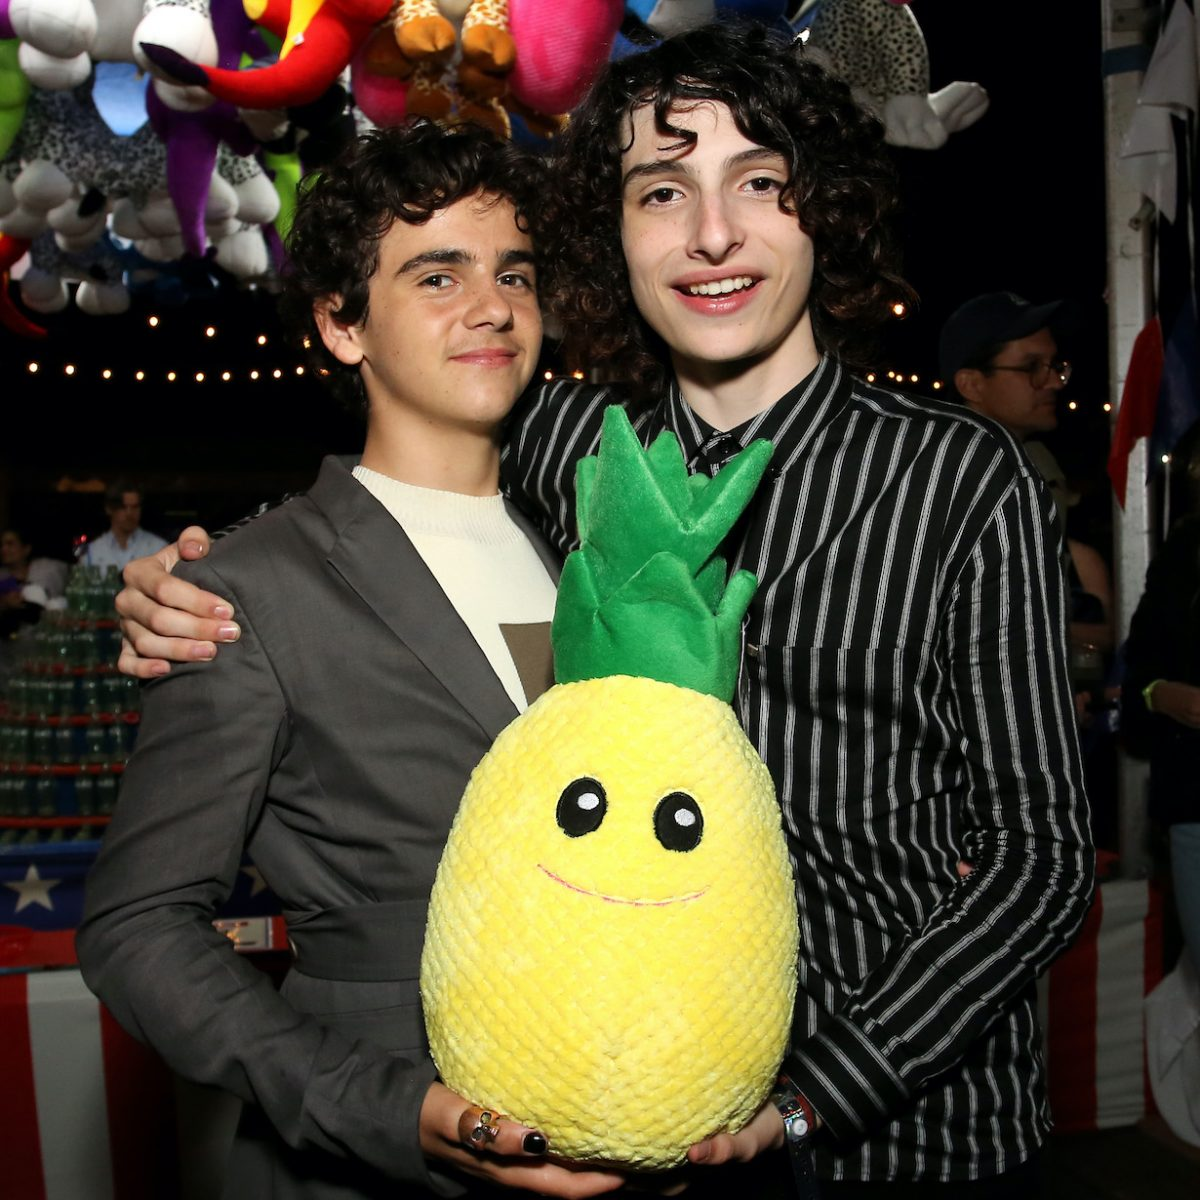 Jack Dylan Grazer and Finn Wolfhard attend the 'Stranger Things' Season 3 World Premiere on June 28, 2019